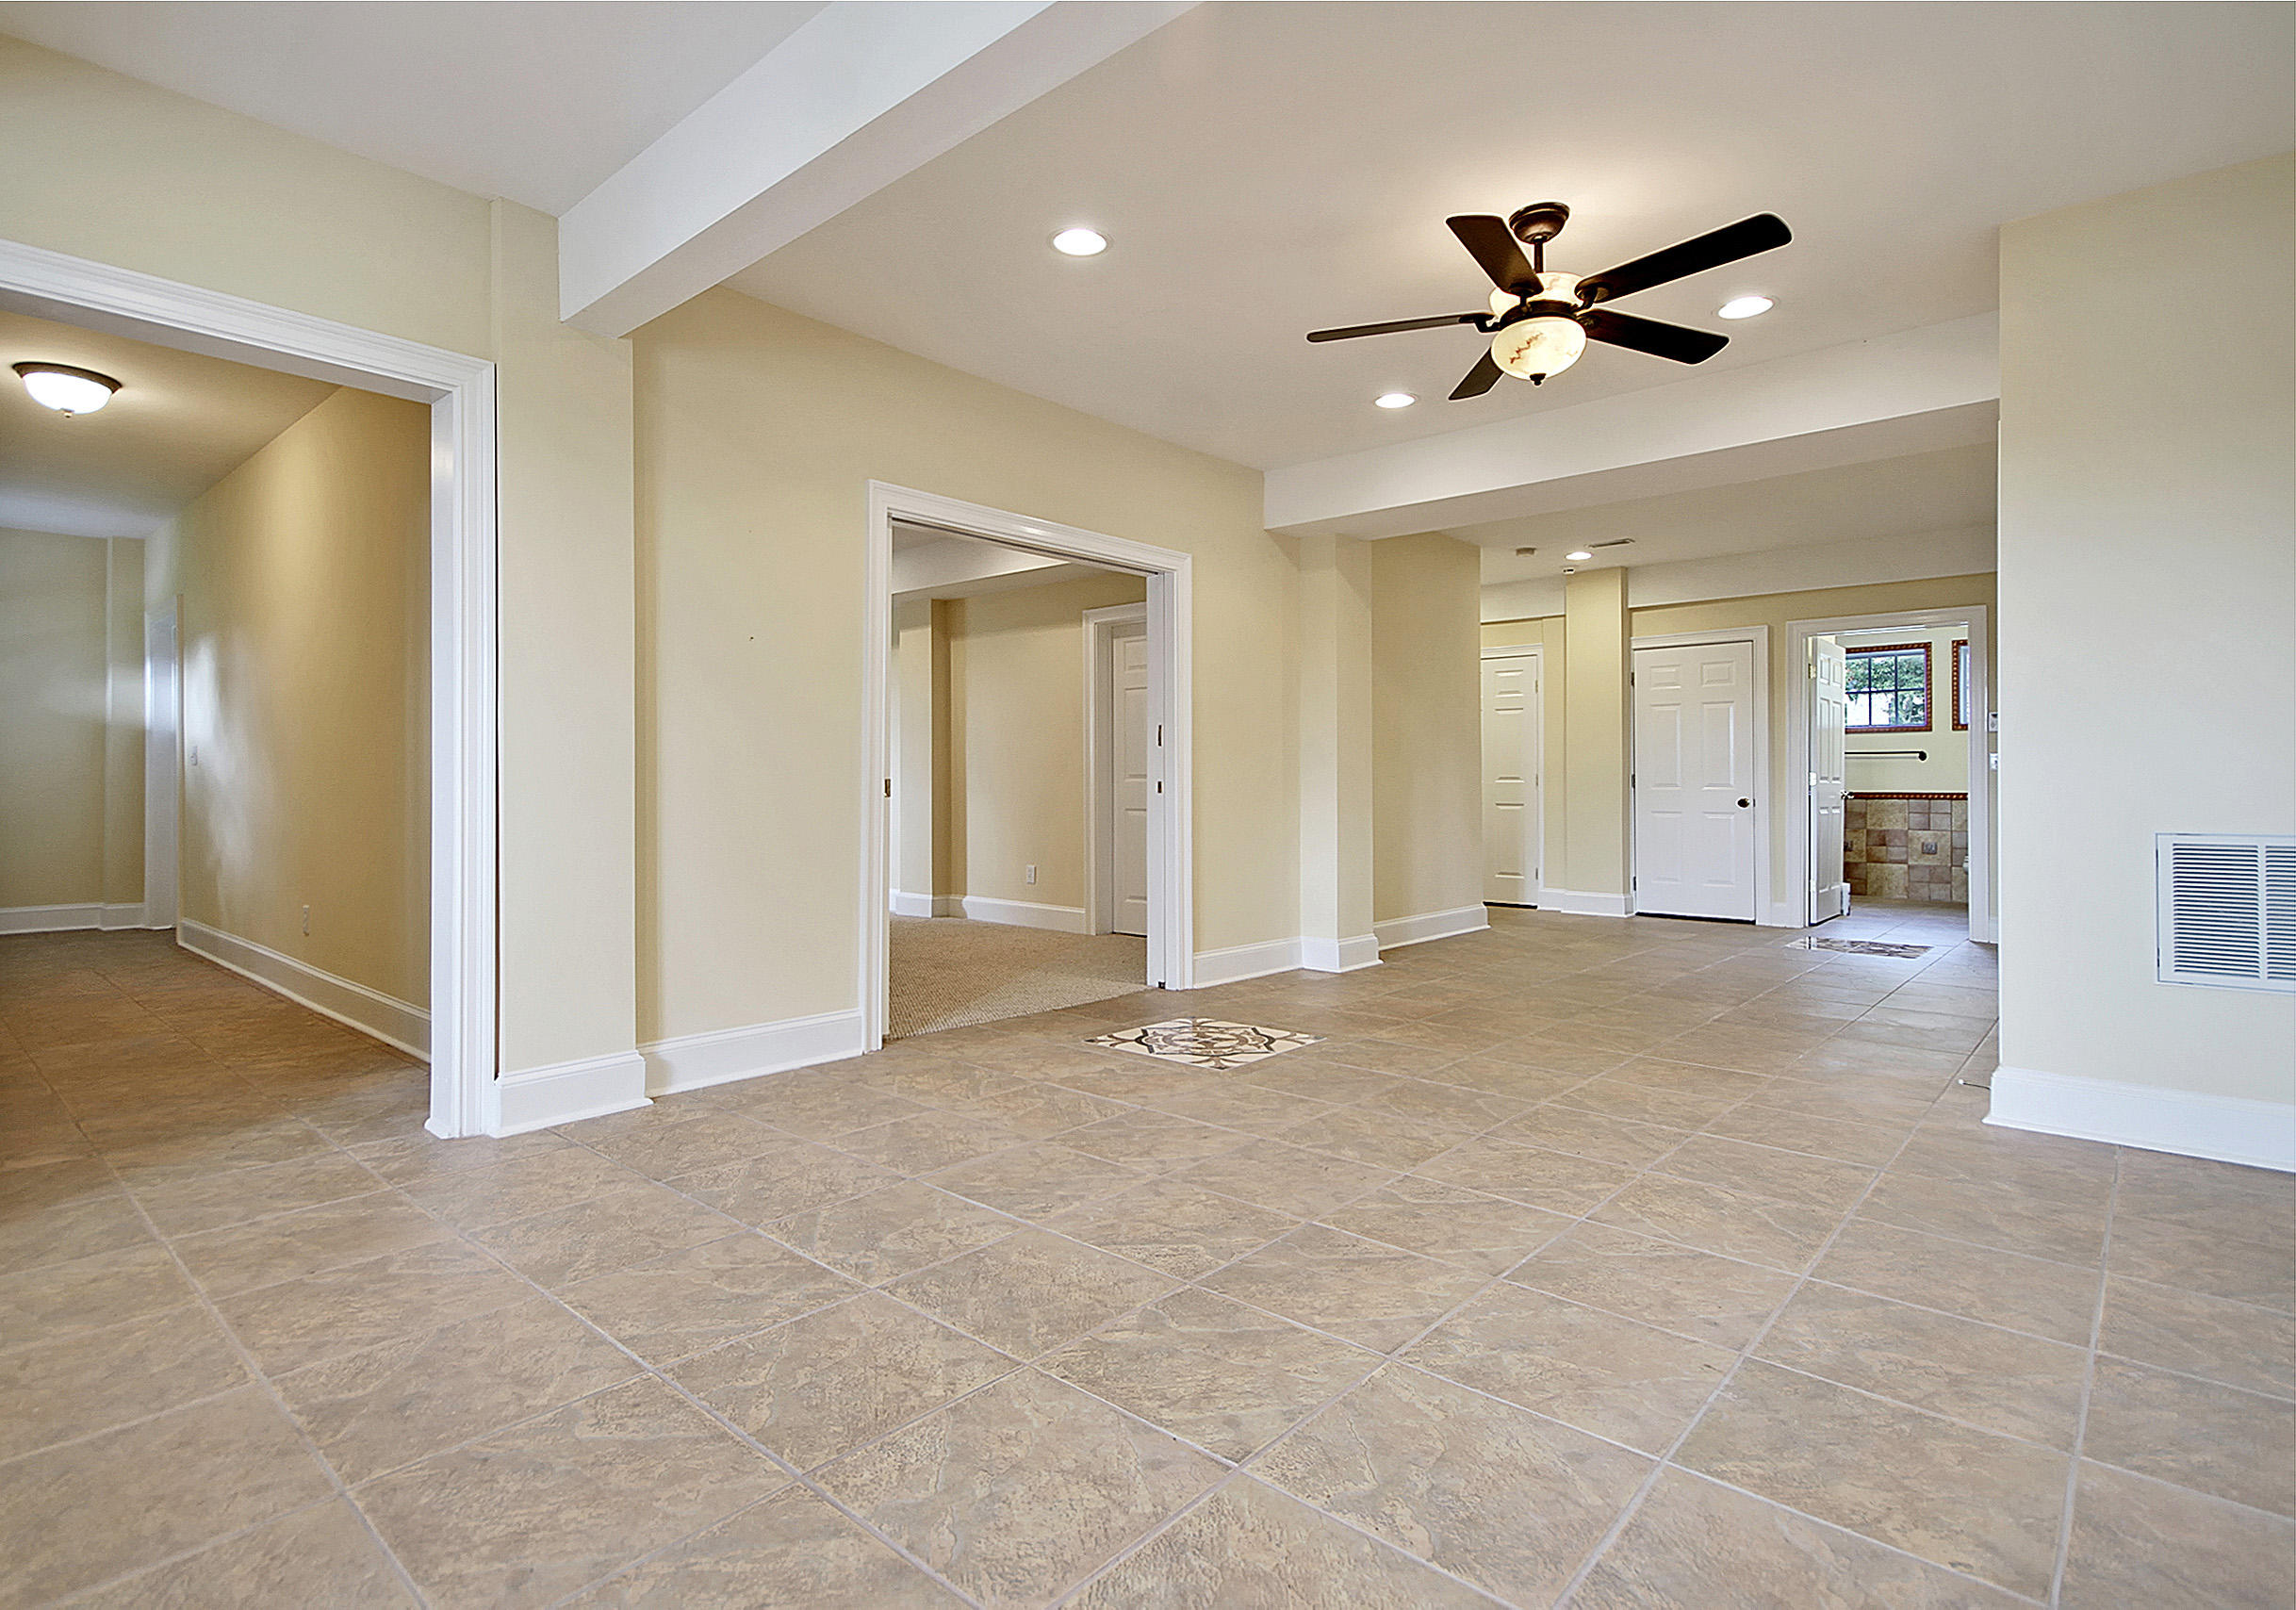 Photo of 1739 Indigo Island Dr, Hanahan, SC 29410